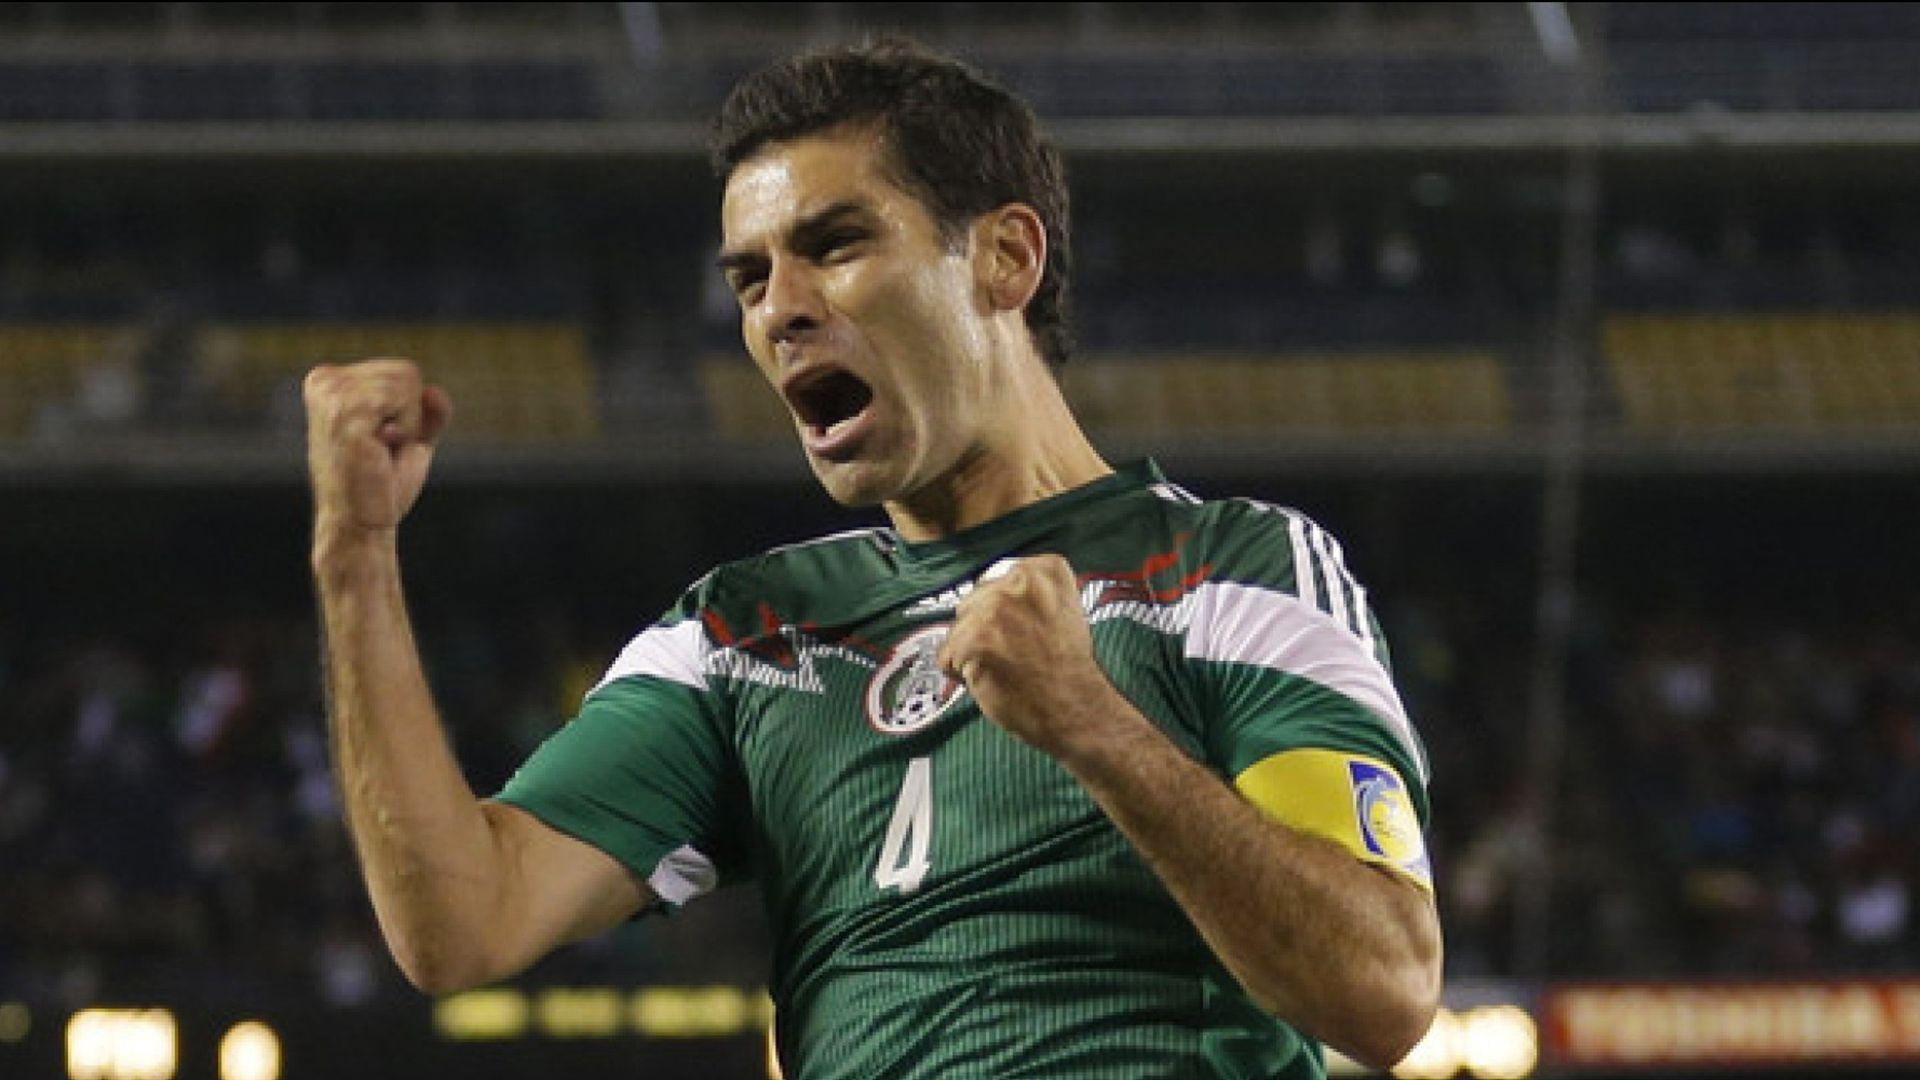 Rafa Marquez Wallpapers 2016 - Wallpaper Cave